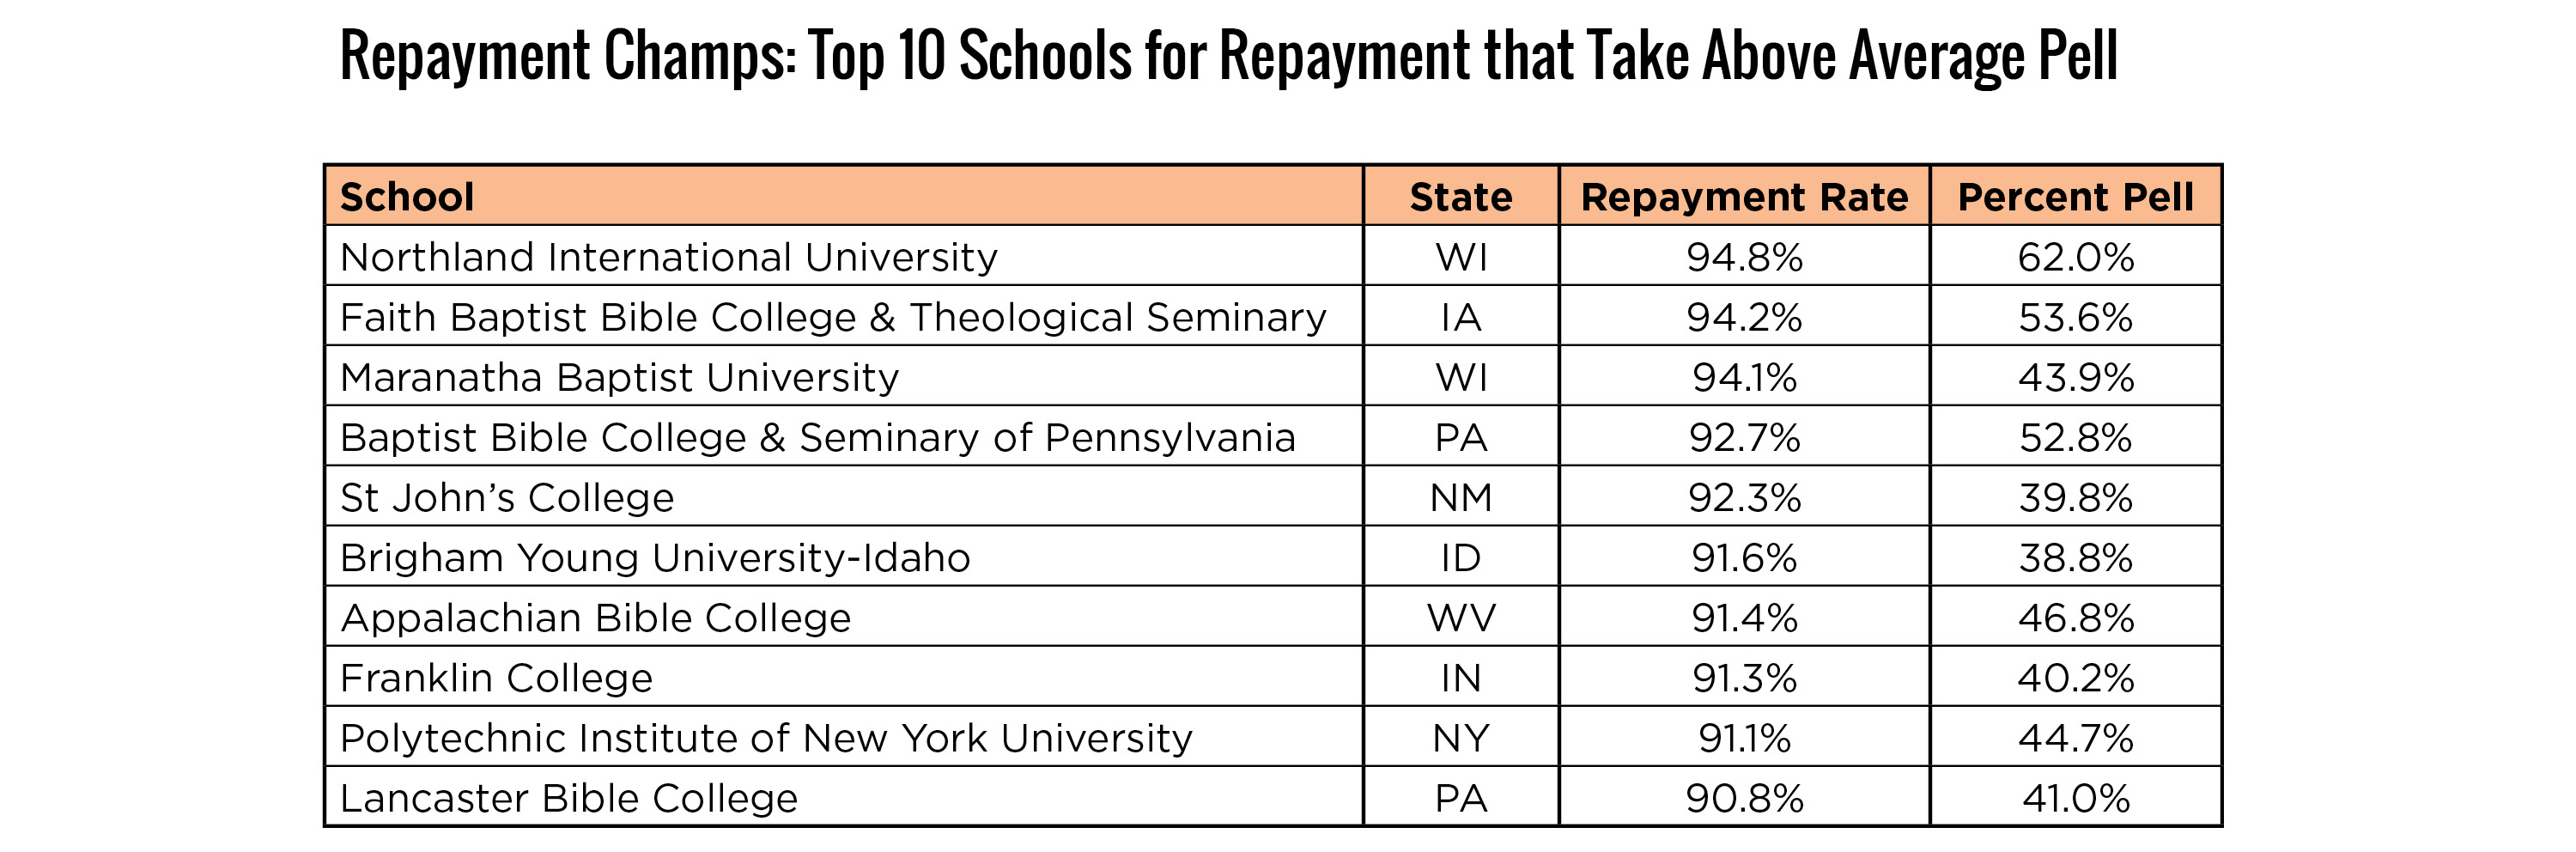 Repayment Champs, 10 ten schools for repayment